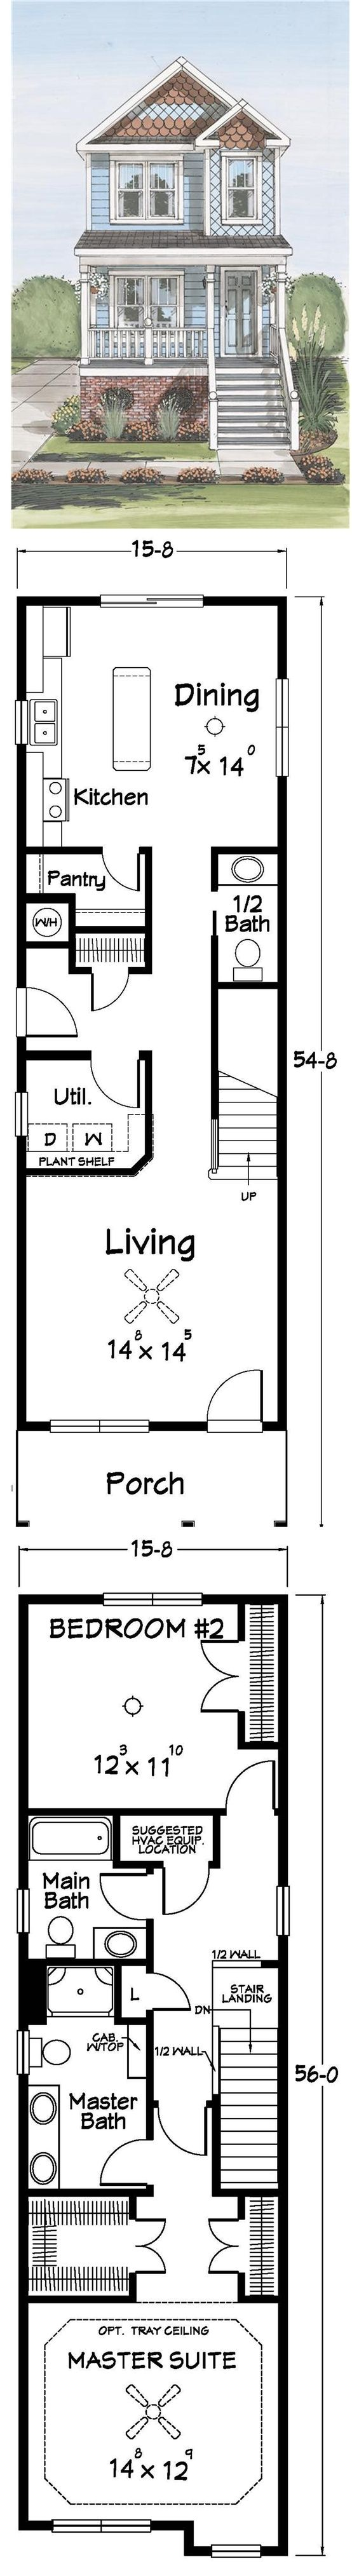 Narrow house plans woodworking projects plans for Lot plan